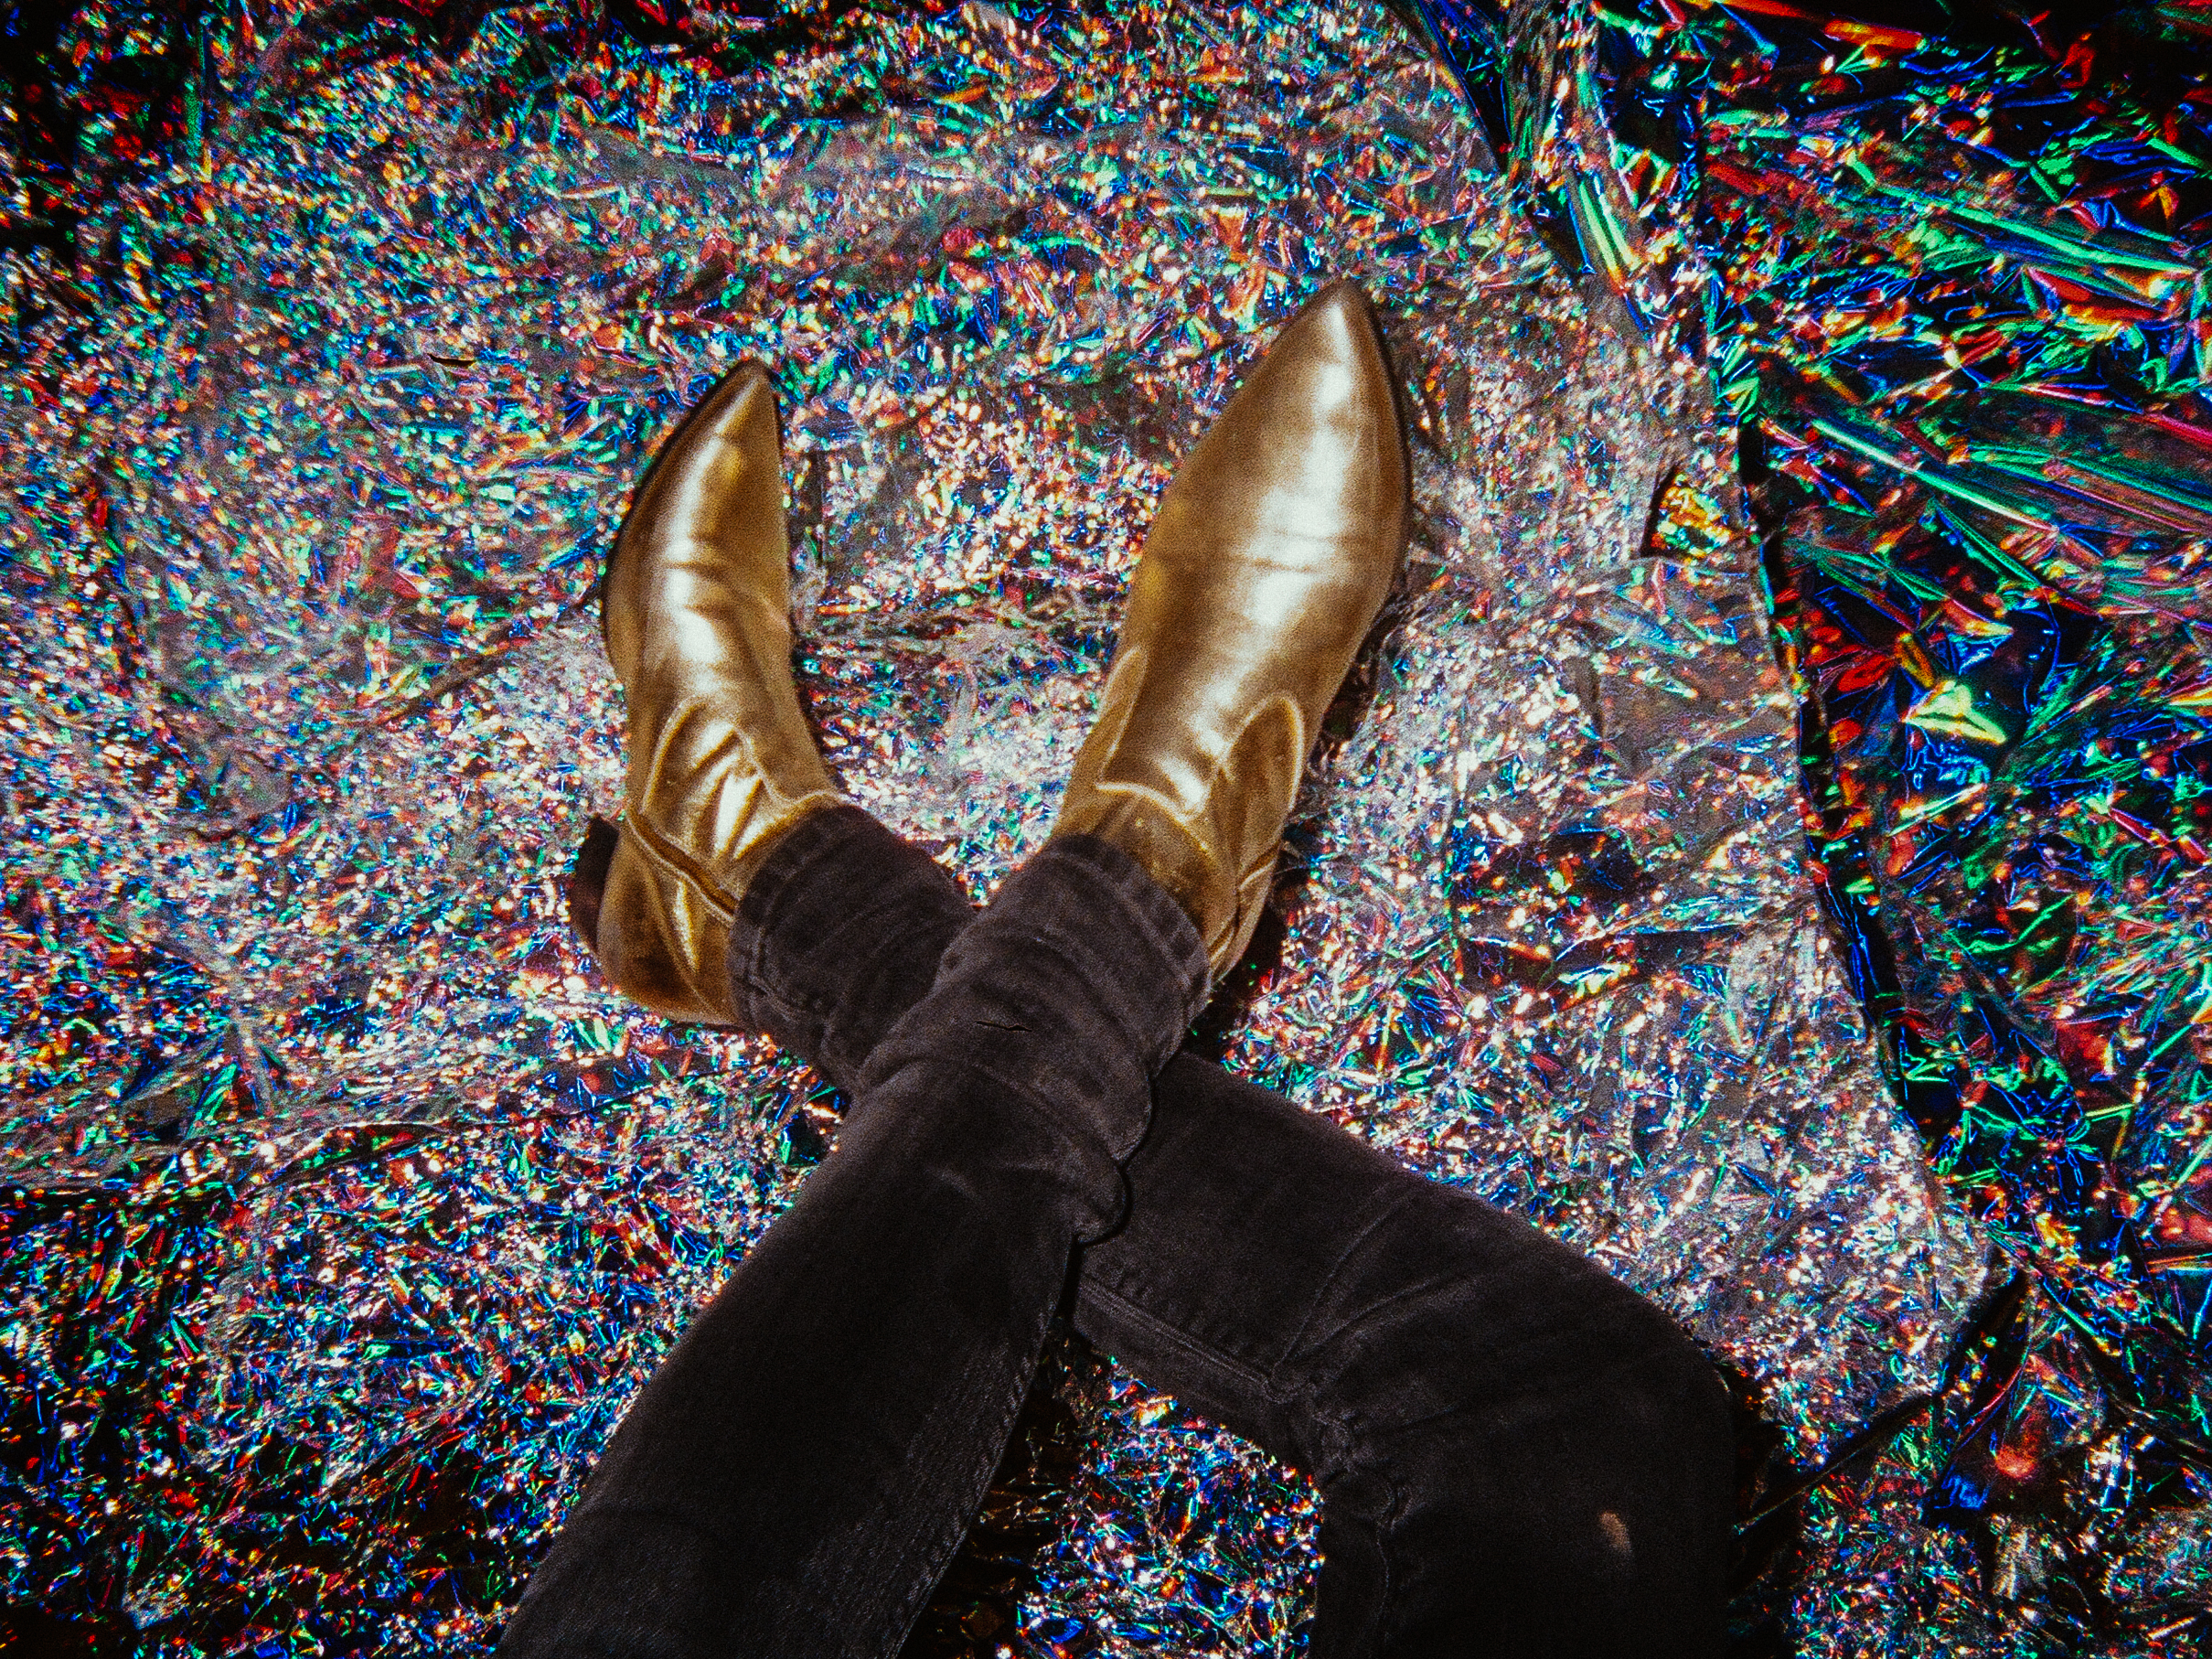 ty french photo field trip yeah field trip gold boots-1.jpg